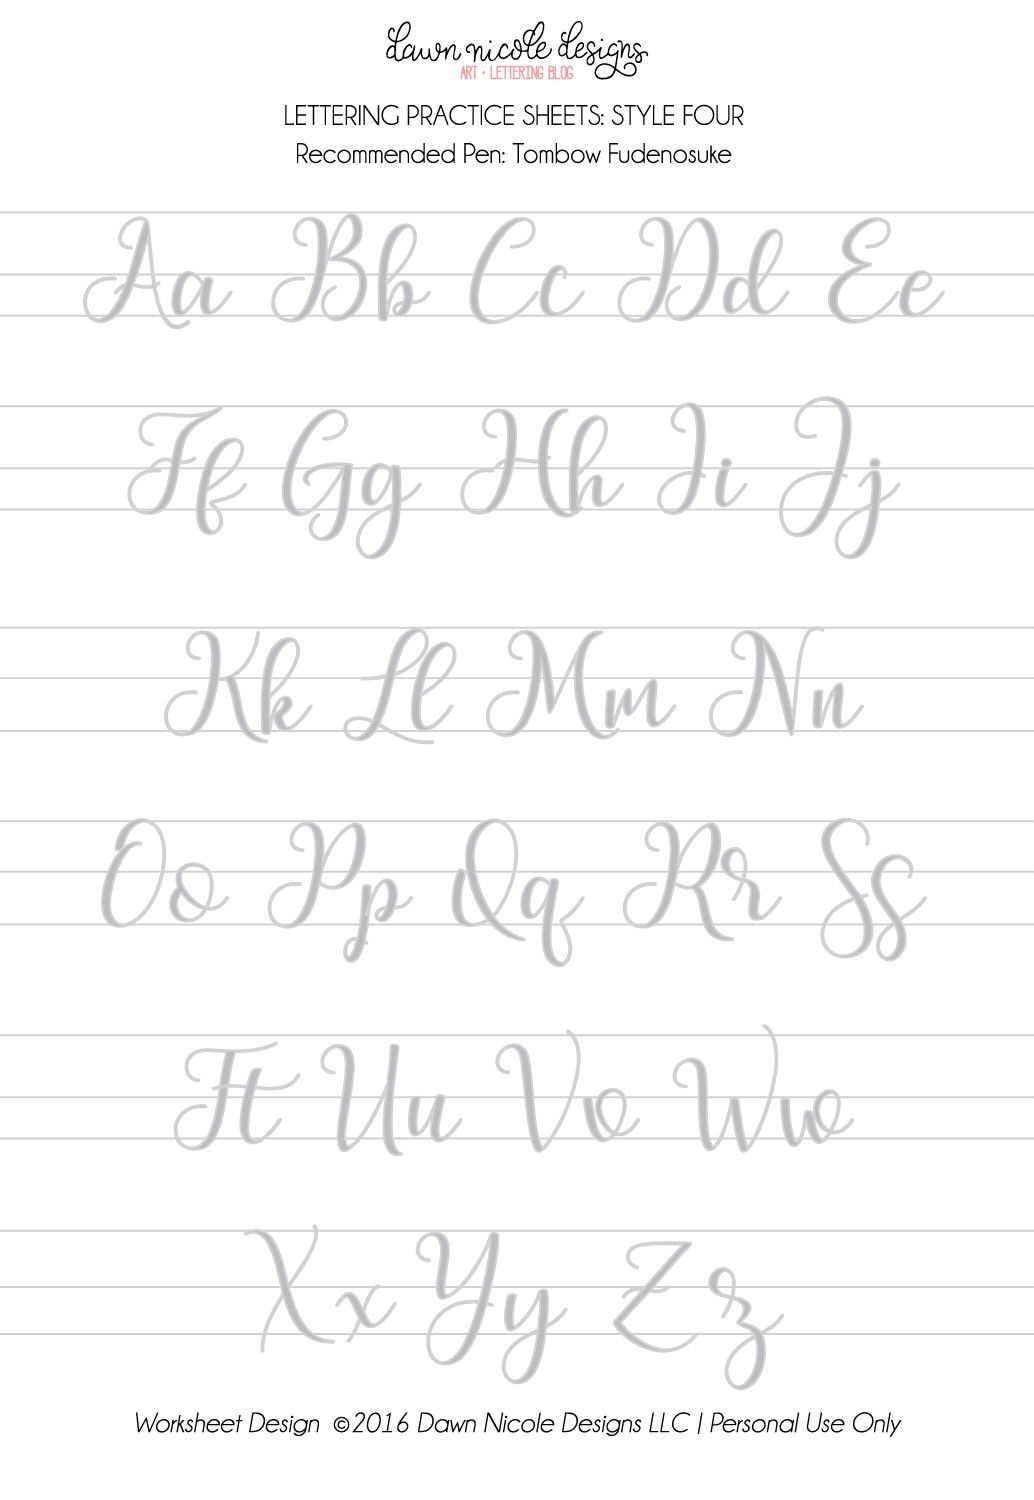 Pin by Pooja Tapadia on Hand lettering practice sheets